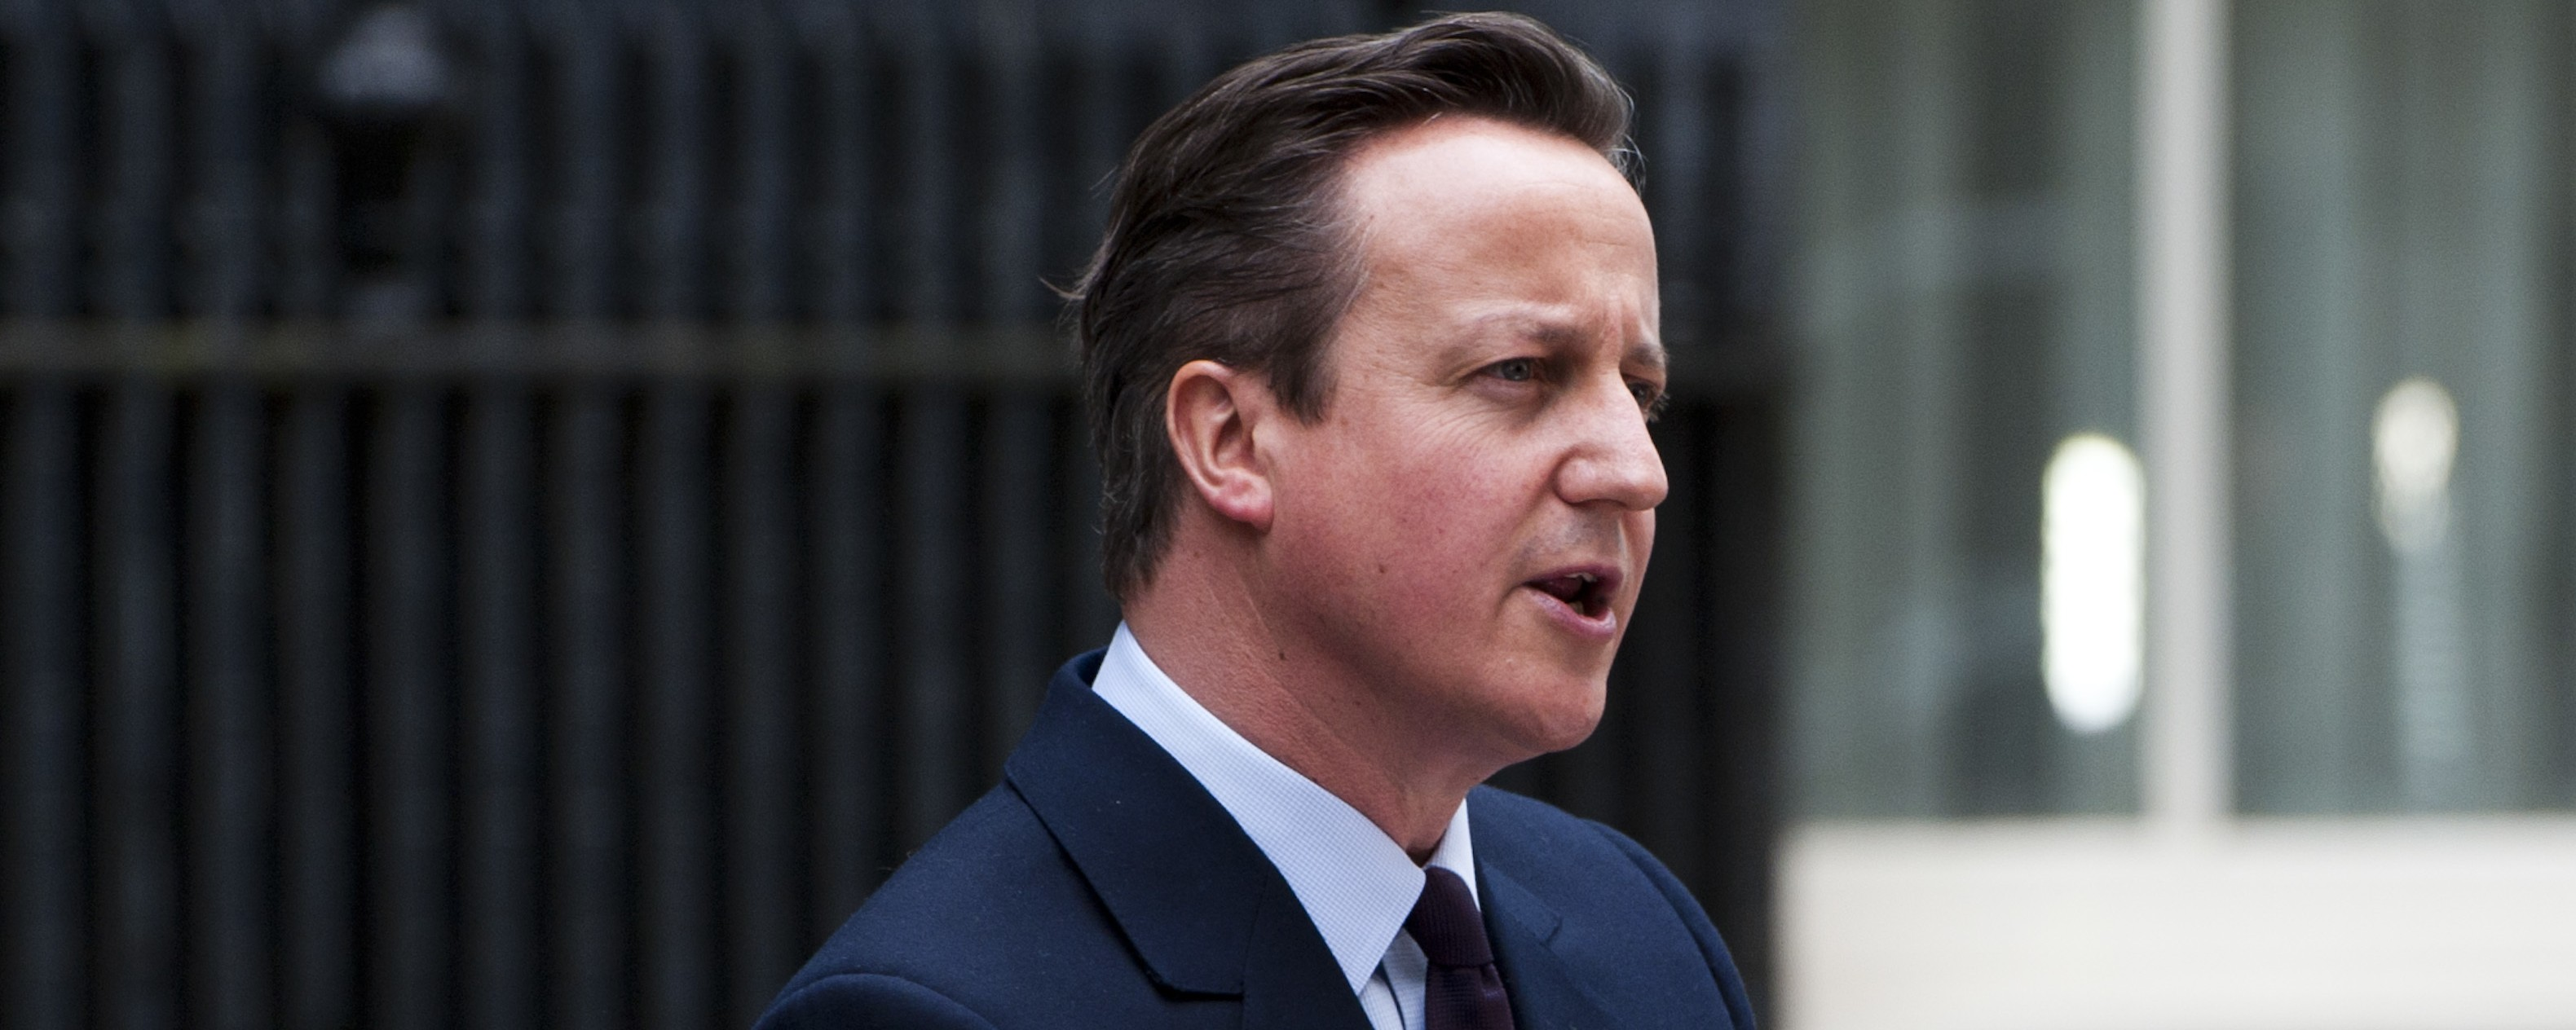 'The Struggle of Our Generation': David Cameron Unveils Plan to Root Out 'Poison' of Islamist Extremism in UK